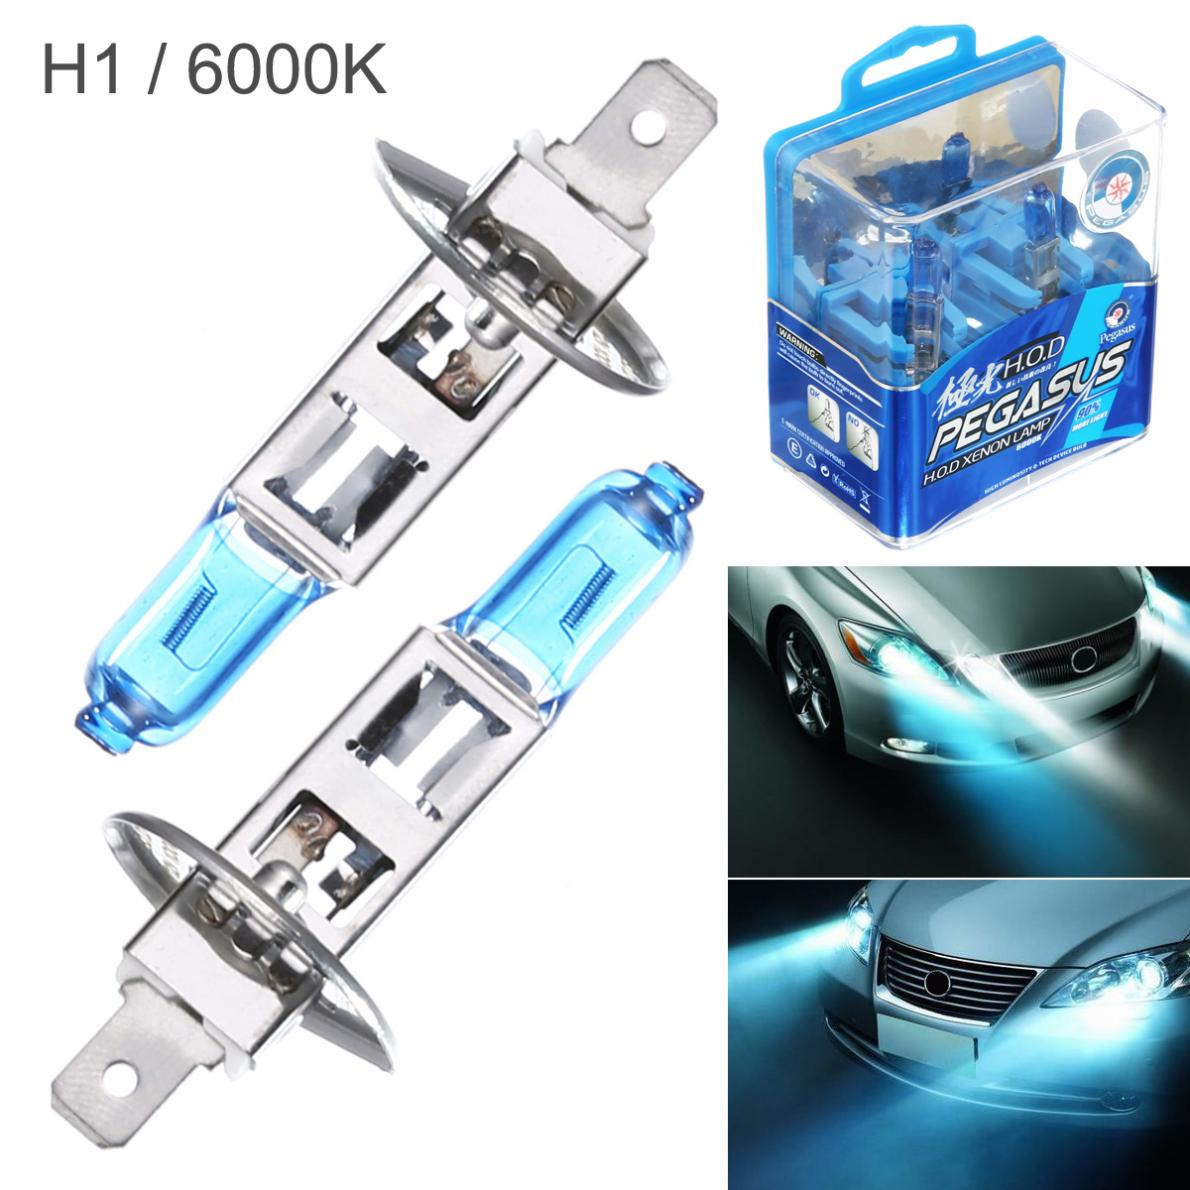 2pcs H1 H3 H4 9005 100W White Light Super Bright Car HOD Xenon Halogen Lamp Auto Front Headlight Fog Bulb dls flatbox slim mini